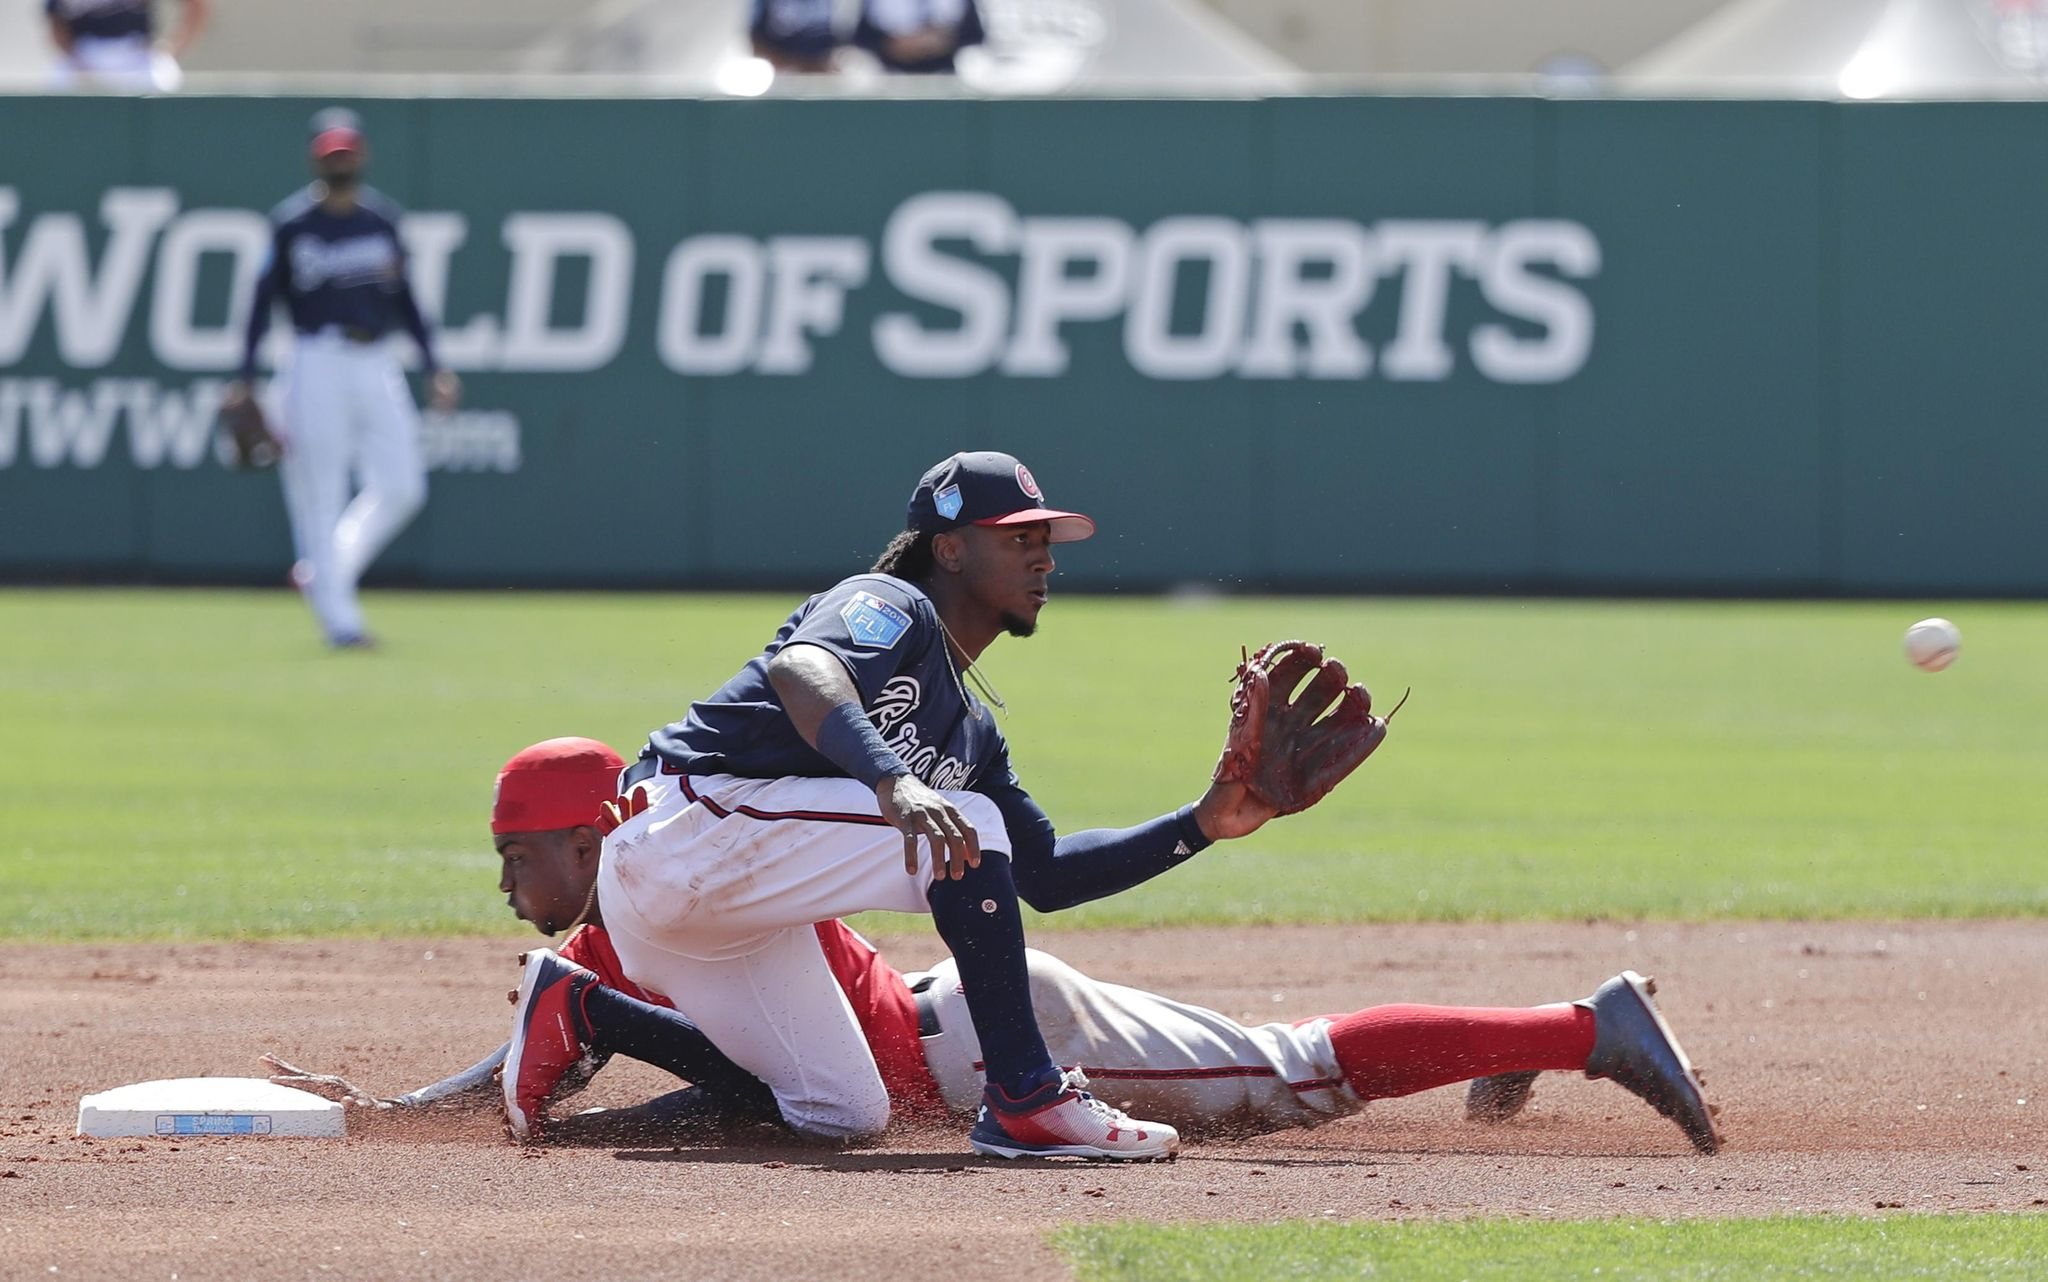 Nationals_braves_spring_baseball_83334_s2048x1282